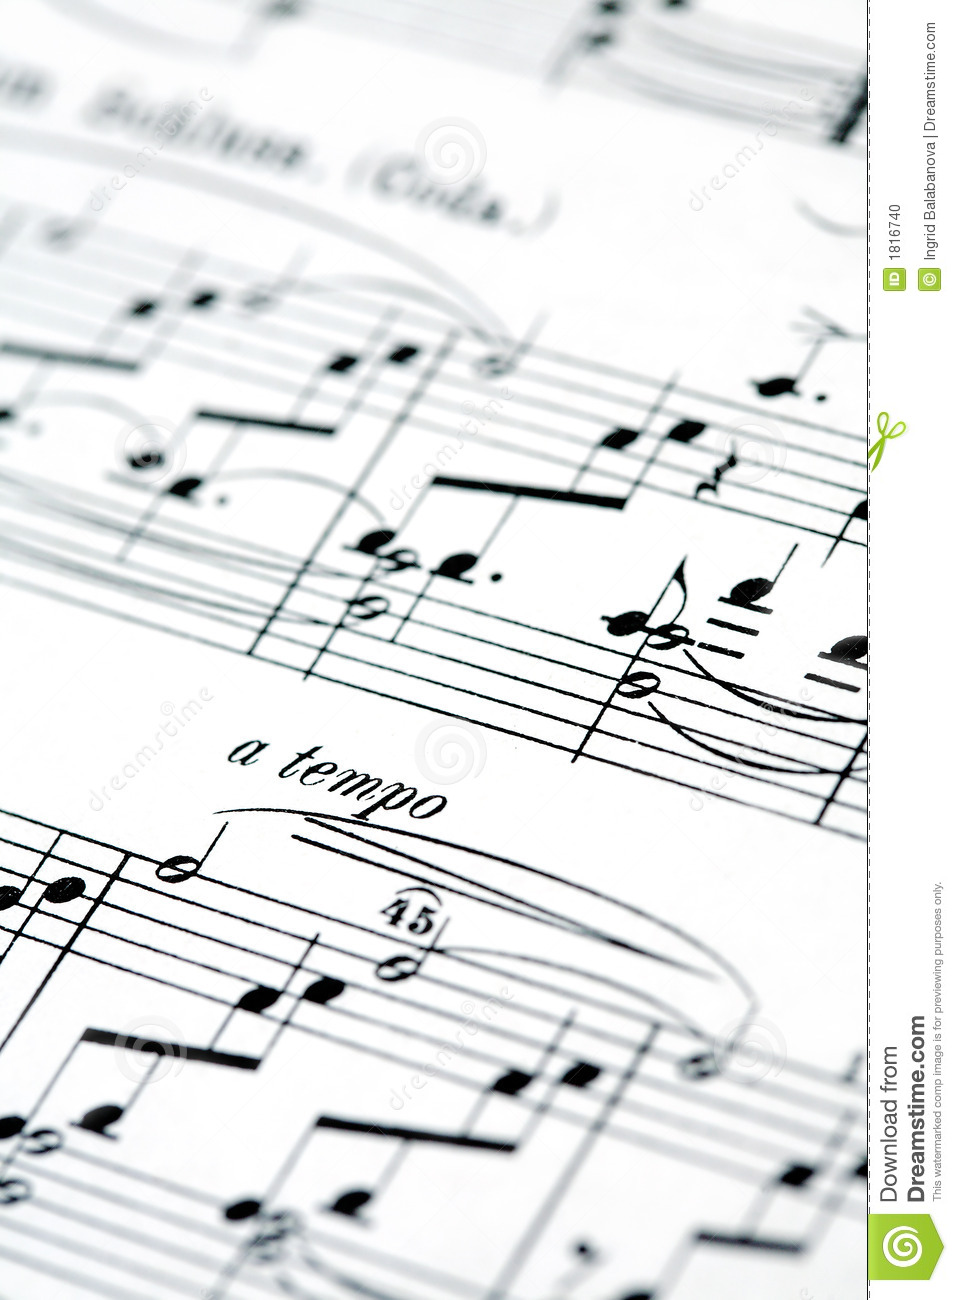 Music notes stock photo. Image of harmony, sheet, musical